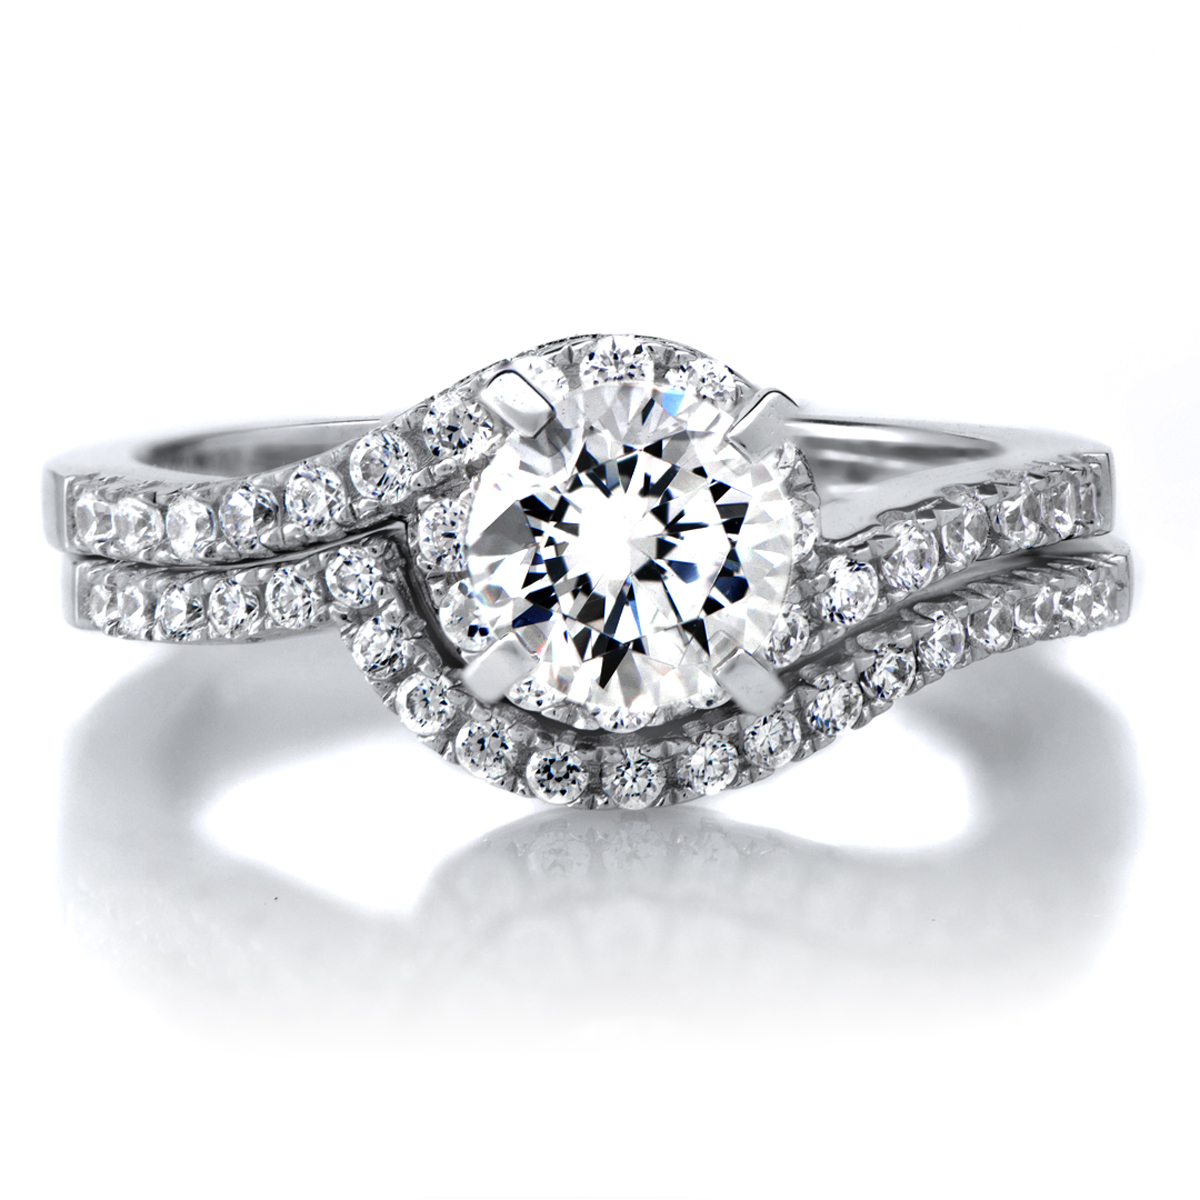 1ct Round Cut CZ Wedding Ring Set